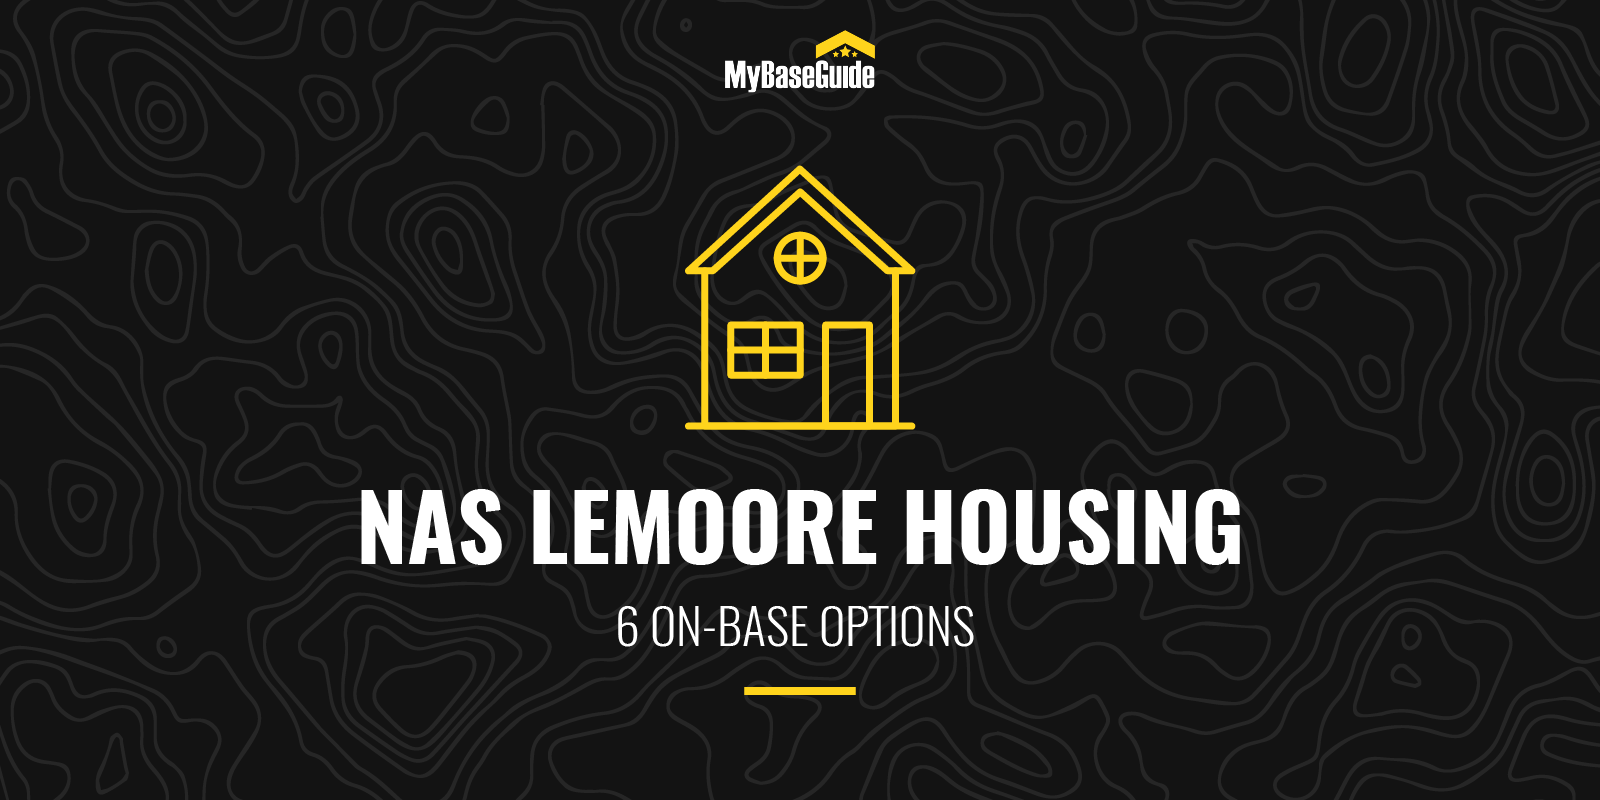 NAS Lemoore Housing: 6 On-Base Options (2021 Edition)